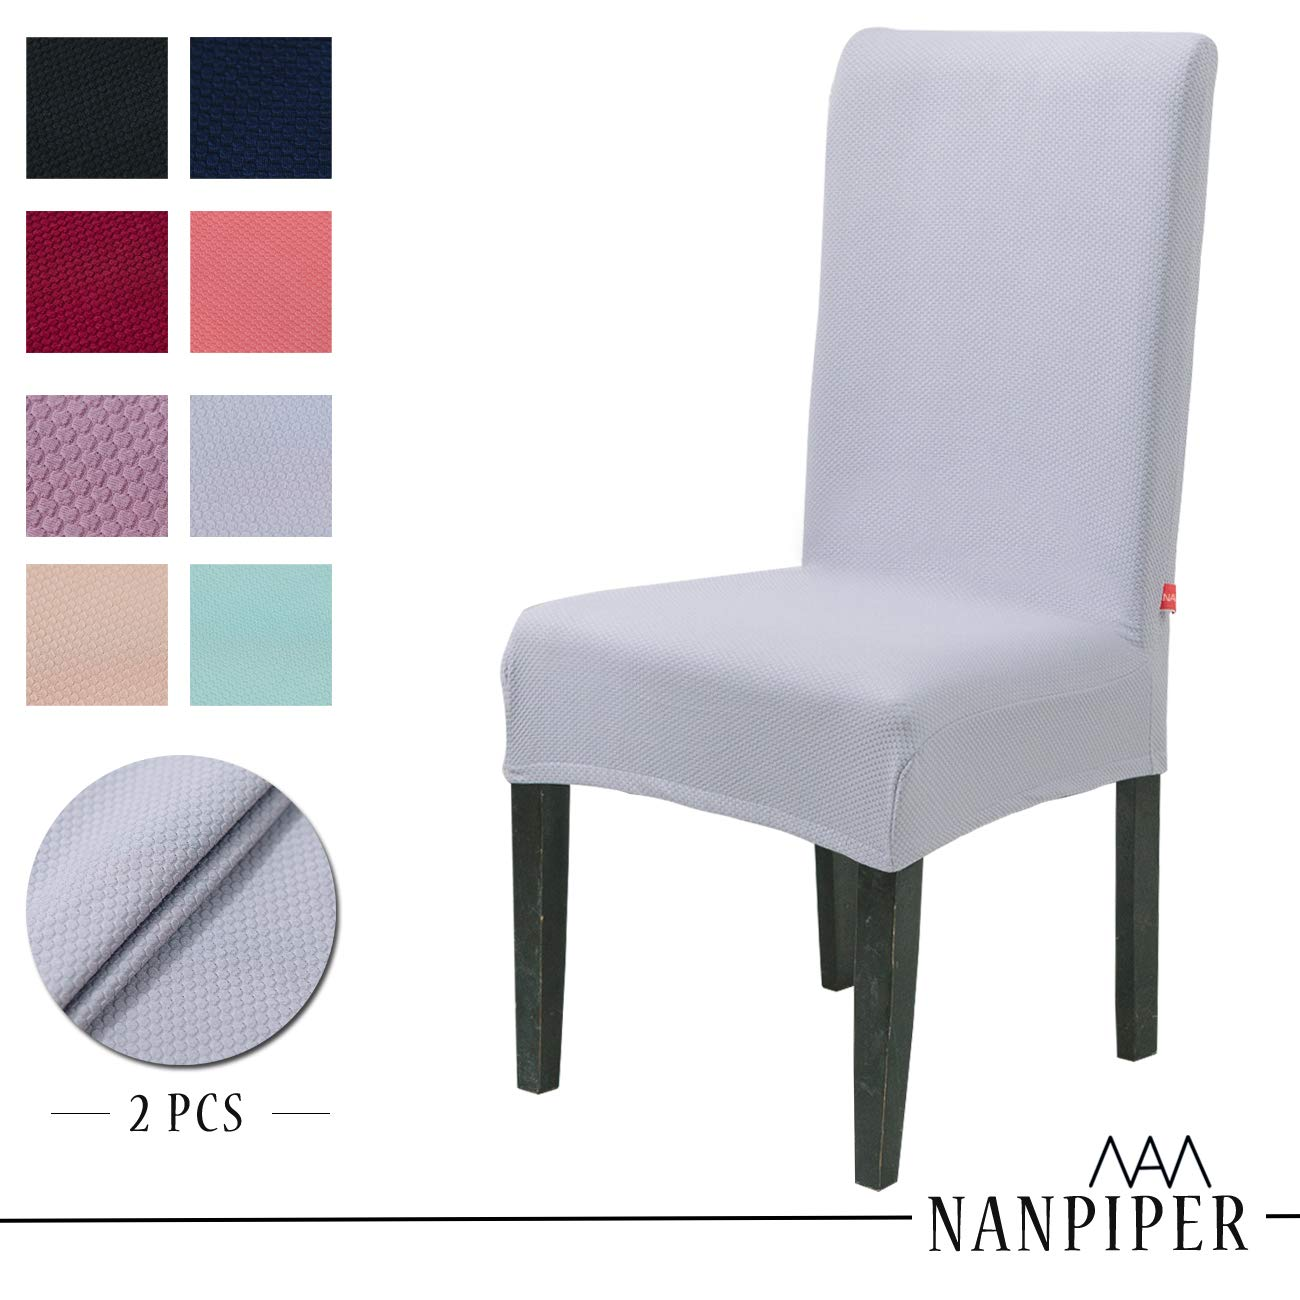 NANPIPER Dining Chair Slipcovers Washable Stretch Chair Covers for Dining Room Spandex Stretch Fabric Home Décor Set of 4 Beige NCC002-8